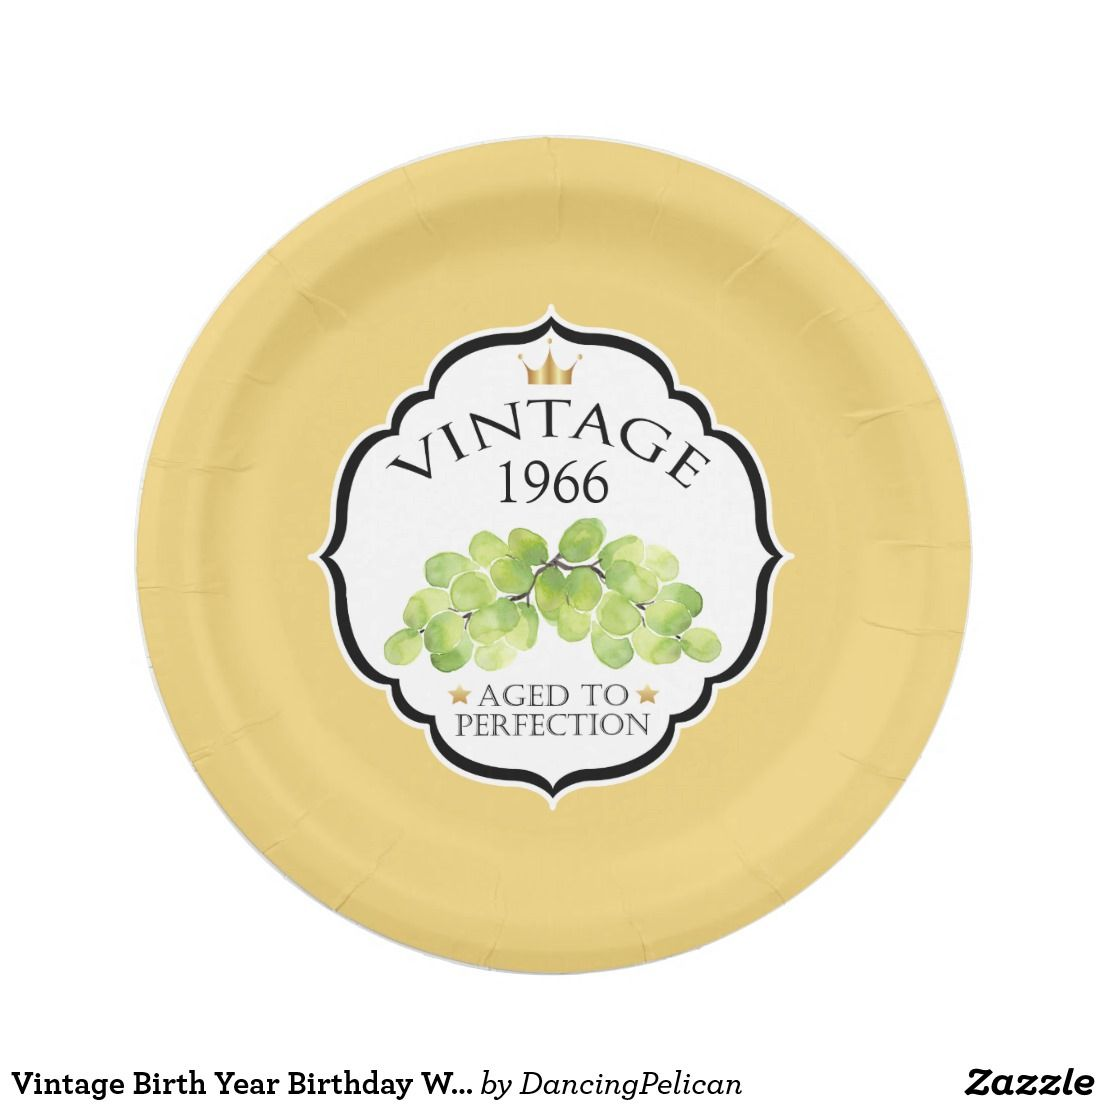 """Vintage Birth Year Birthday Wine Label Paper Plate - Create a personalized party plate with the birth year of your honoree by replacing the sample year shown with your honoree's birth year. You can also change the gold background to any other color by choosing the """"customize it"""" button and selecting a different background color. Sold at DancingPelican on Zazzle."""